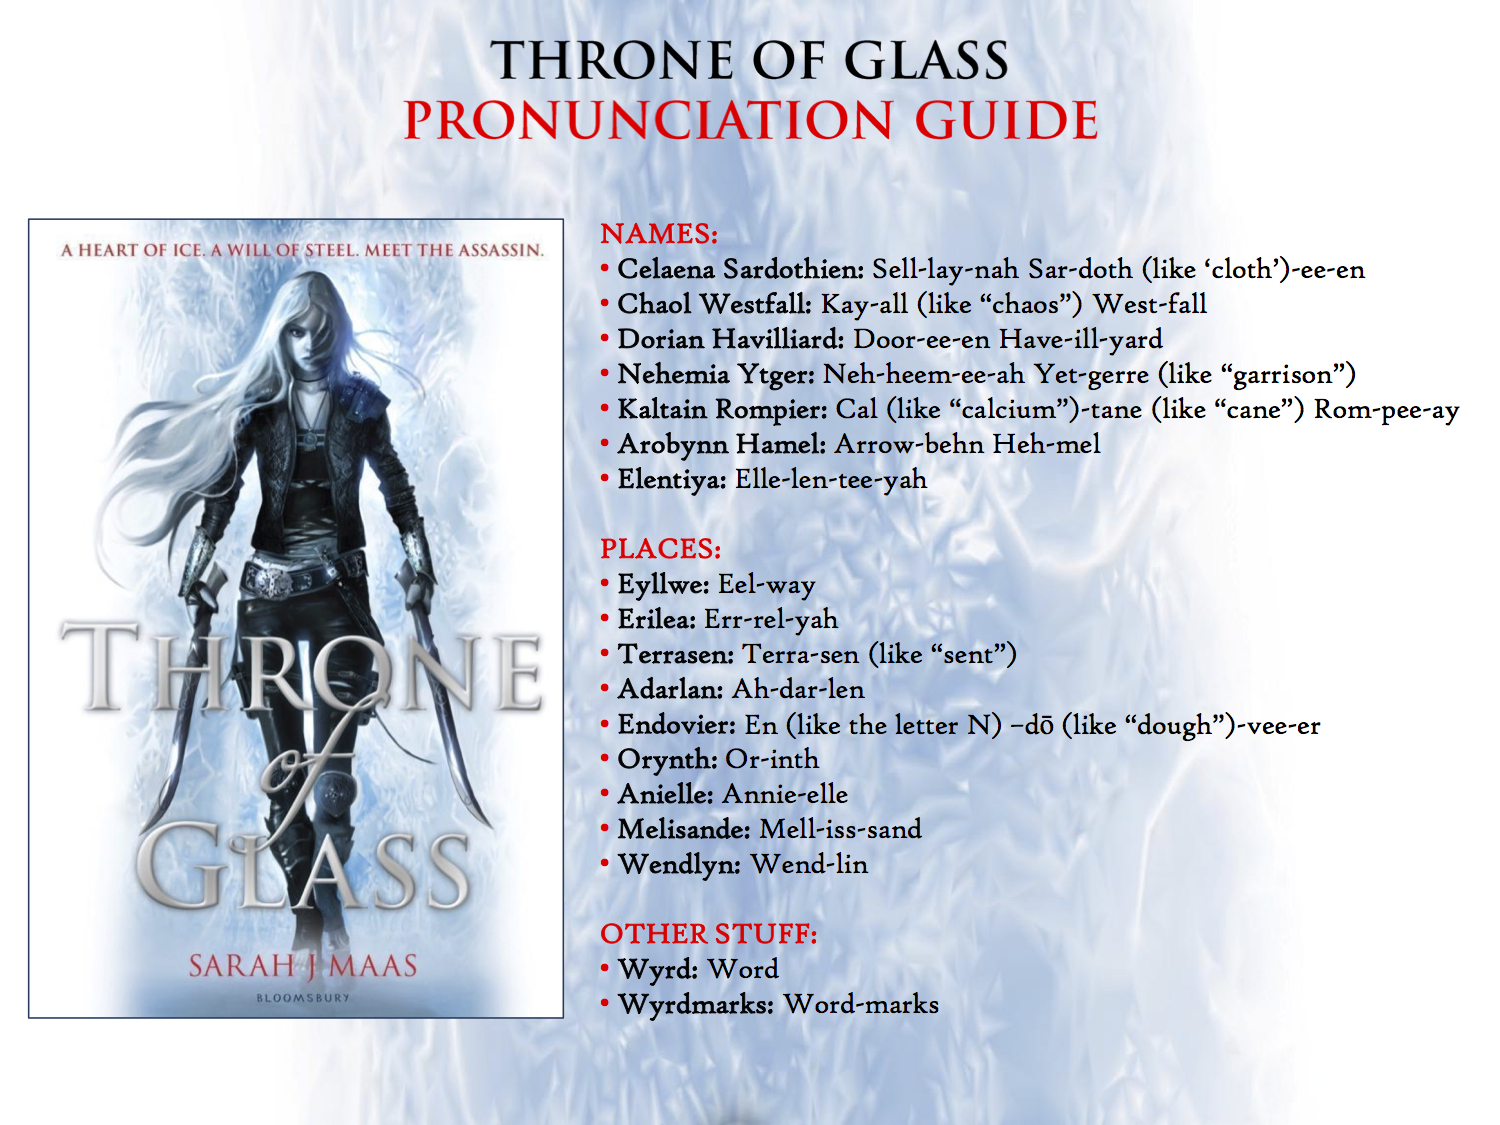 http://sarahjmaas.com/wp-content/uploads/2012/05/Throne-of-Glass-Pronunciation-Guide.jpg